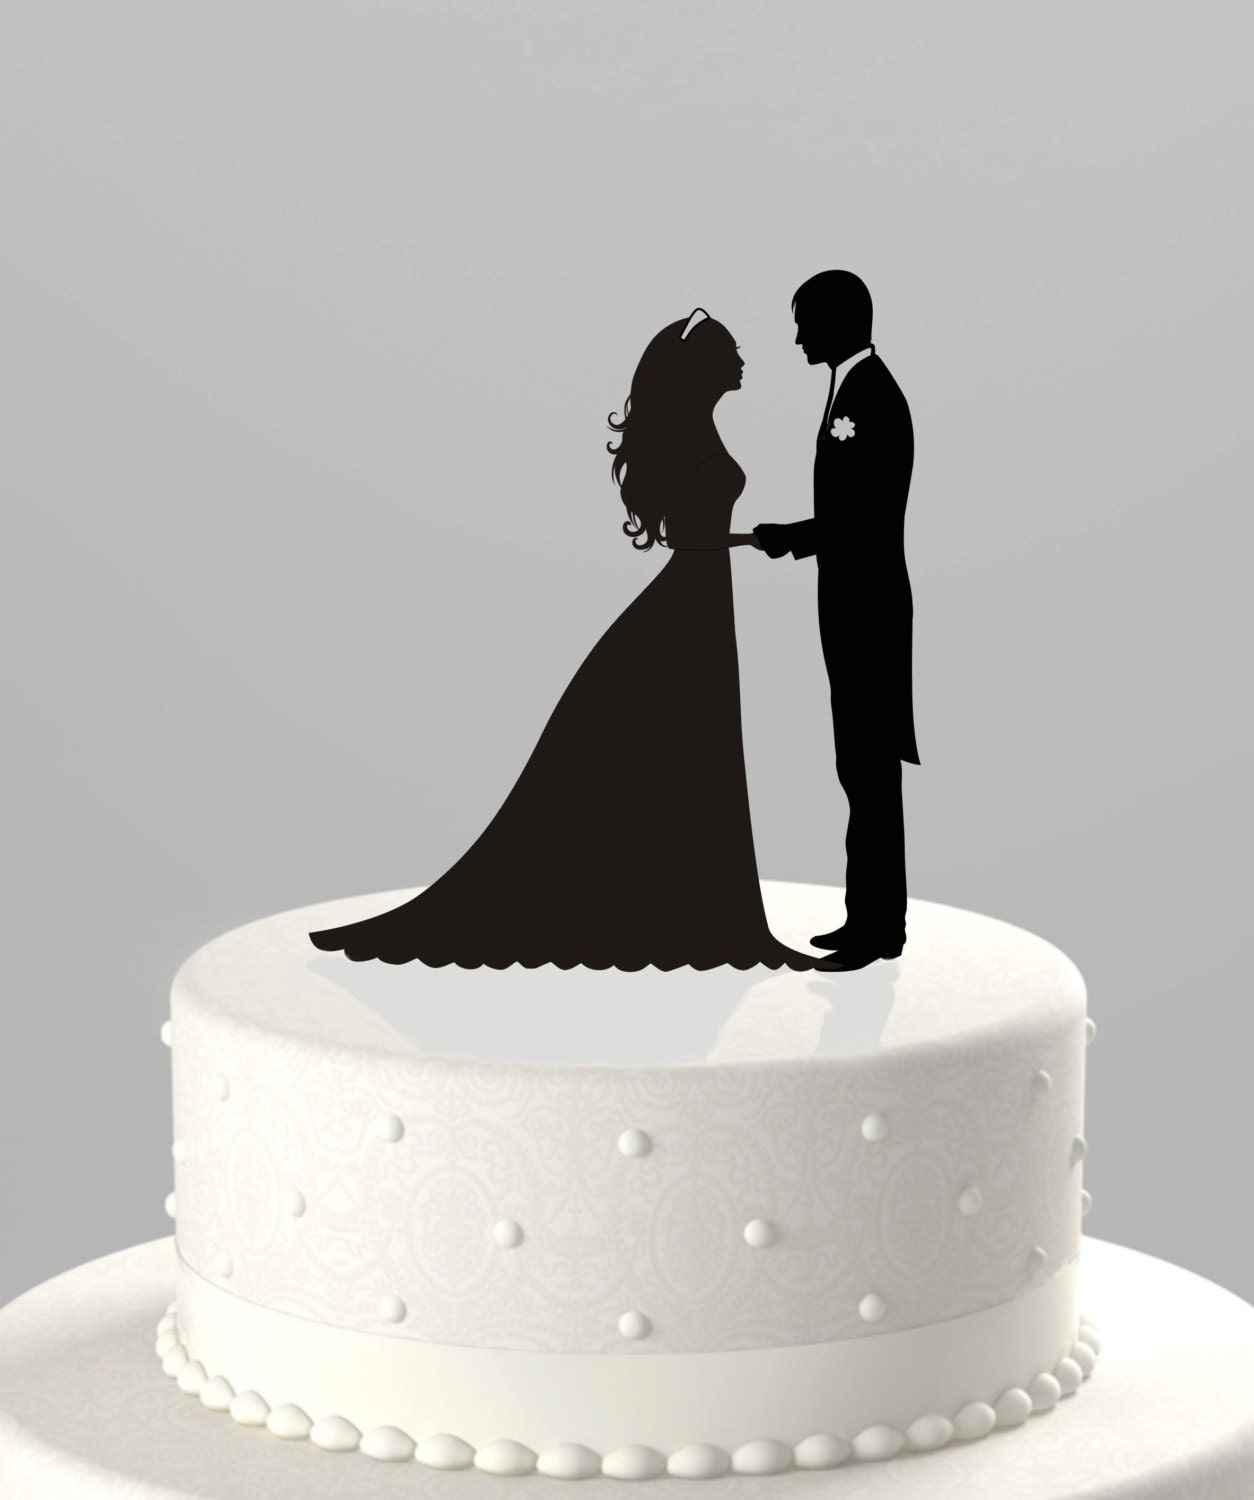 Bride Wedding Cake Topper: Wedding Cake Topper Silhouette Groom And Bride Acrylic Cake